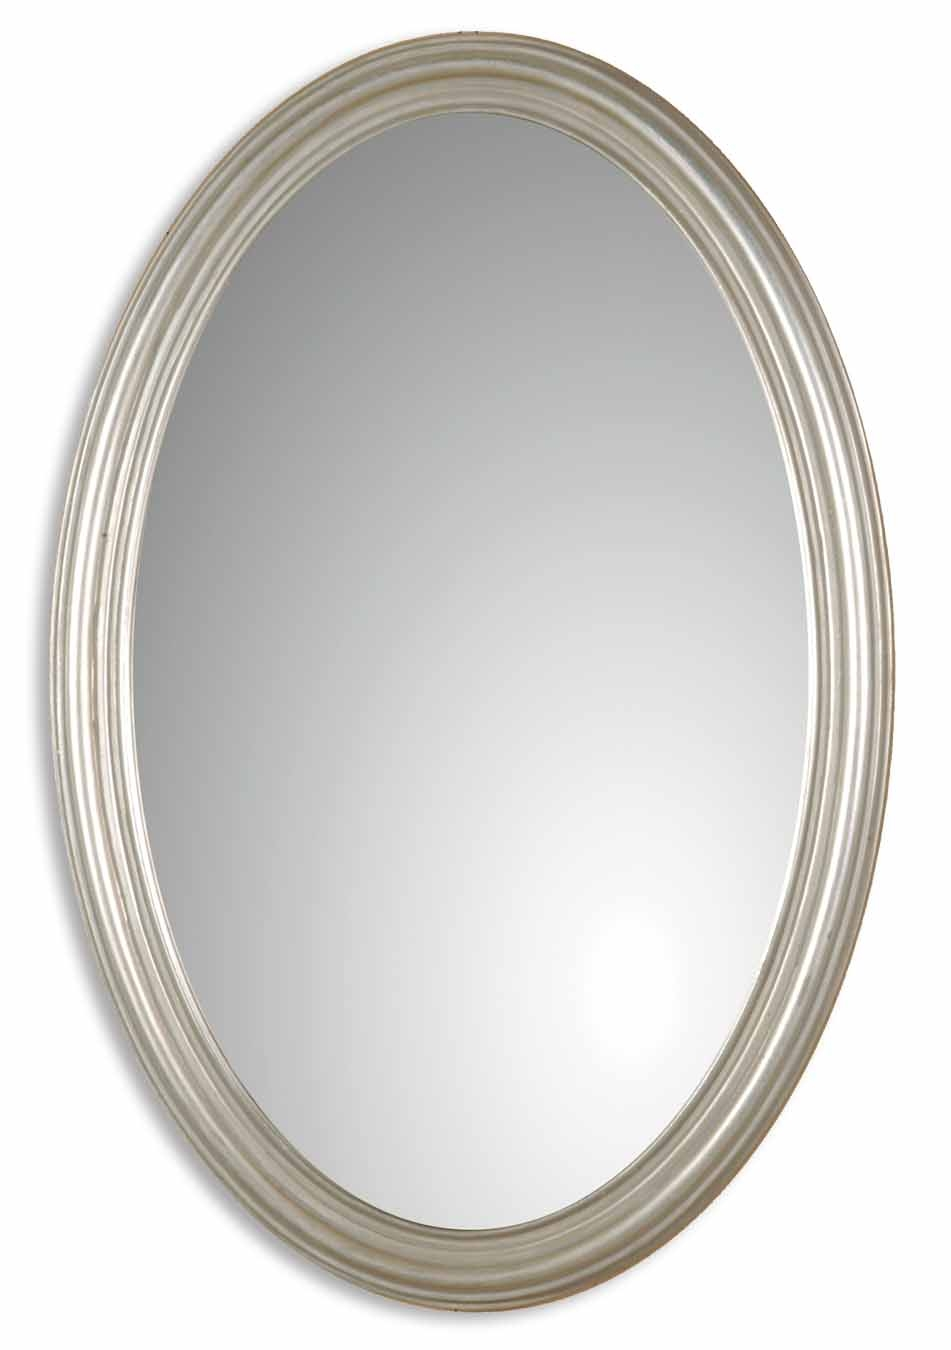 Featured Image of Silver Oval Mirror